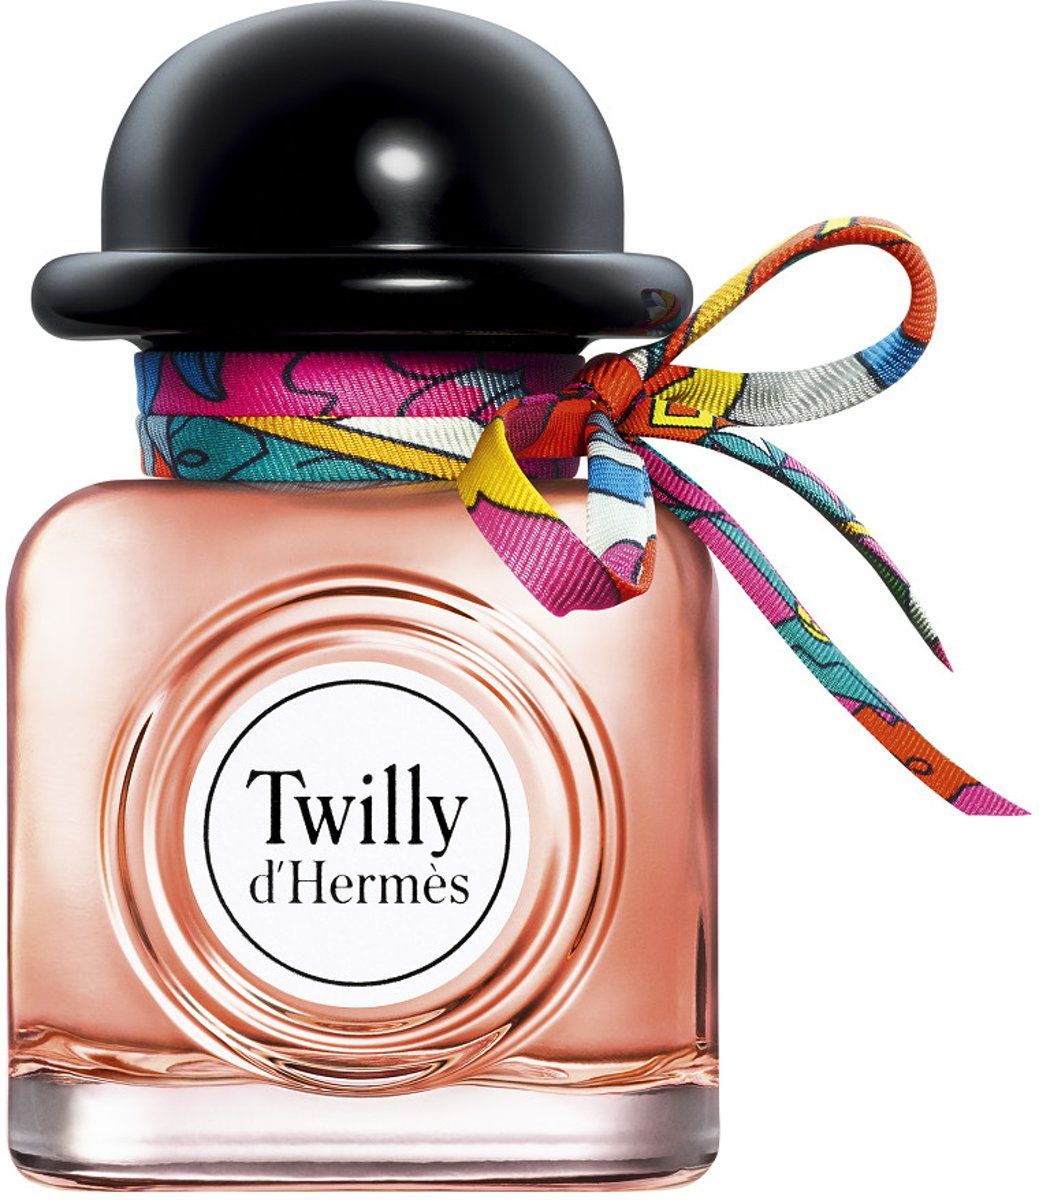 Hermes Twilly dHermes Edp Spray 30 ml